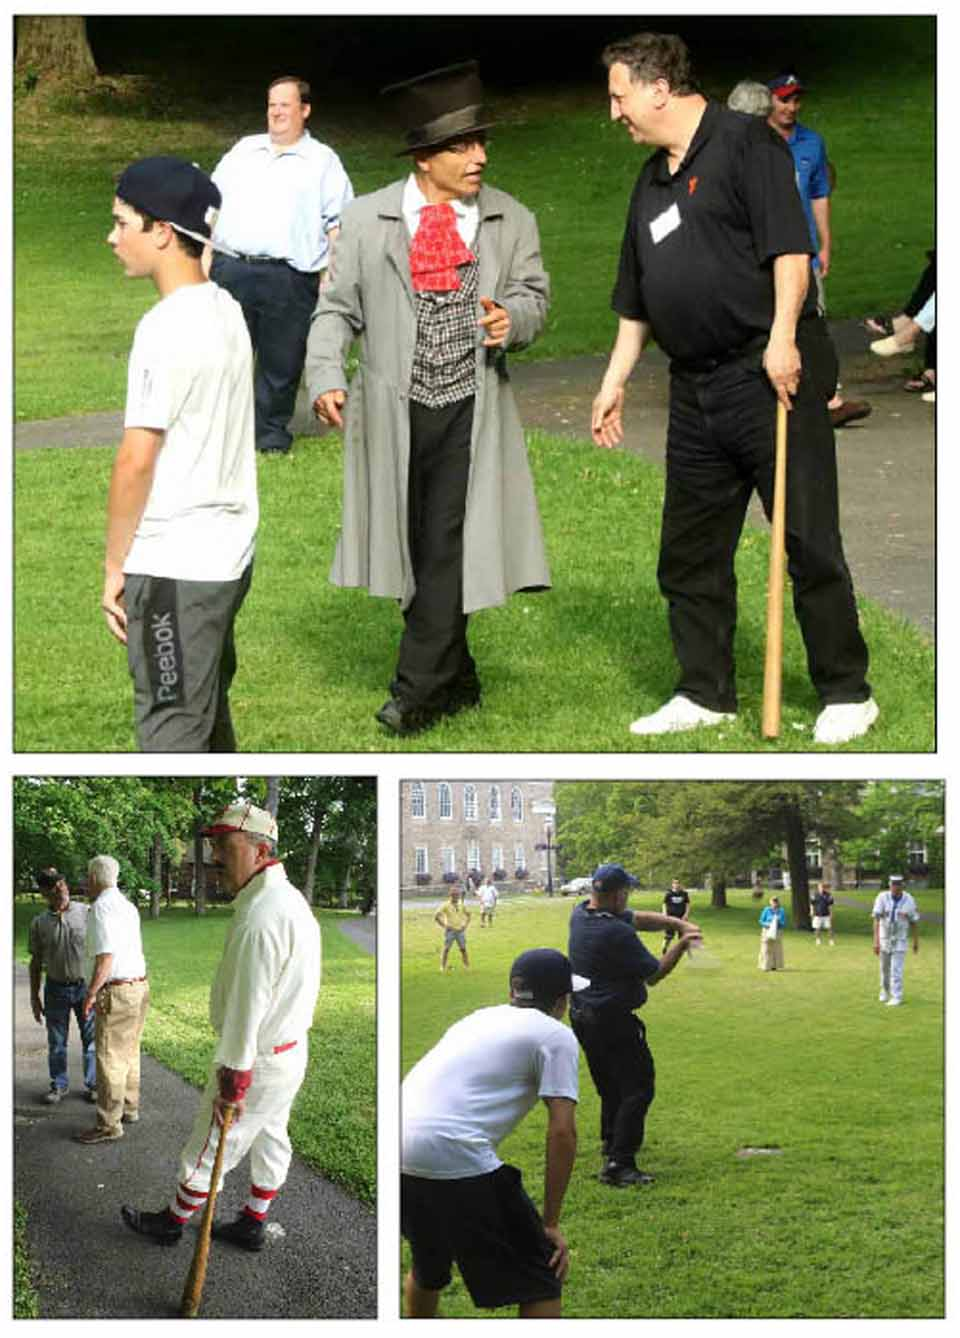 """The 28th Cooperstown Symposium on Baseball & American Culture is underway at the Hall of Fame, and participants are engaging at this hour in the annual game of """"Town Ball,"""" an archaic form of the National Game, in Cooper Park. At top is Peter Young, the 19th-century-style umpire, (and Cooperstown native – his mom, Pat is a volunteer at The Farmers' Museum – and currently a math professor at St. Rose College in Albany). Below left is Tim Wiles, former of Hall of Fame director of research, who took in a few innings; he'll be Casey at the Bat at this evening's symposium banquet. Below right, Bill Simons, SUNY Oneonta history professor and longtime symposium participant, cranks a single toward the James Fenimore Cooper statue. (Jim Kevlin/AllOTSEGO.com)"""